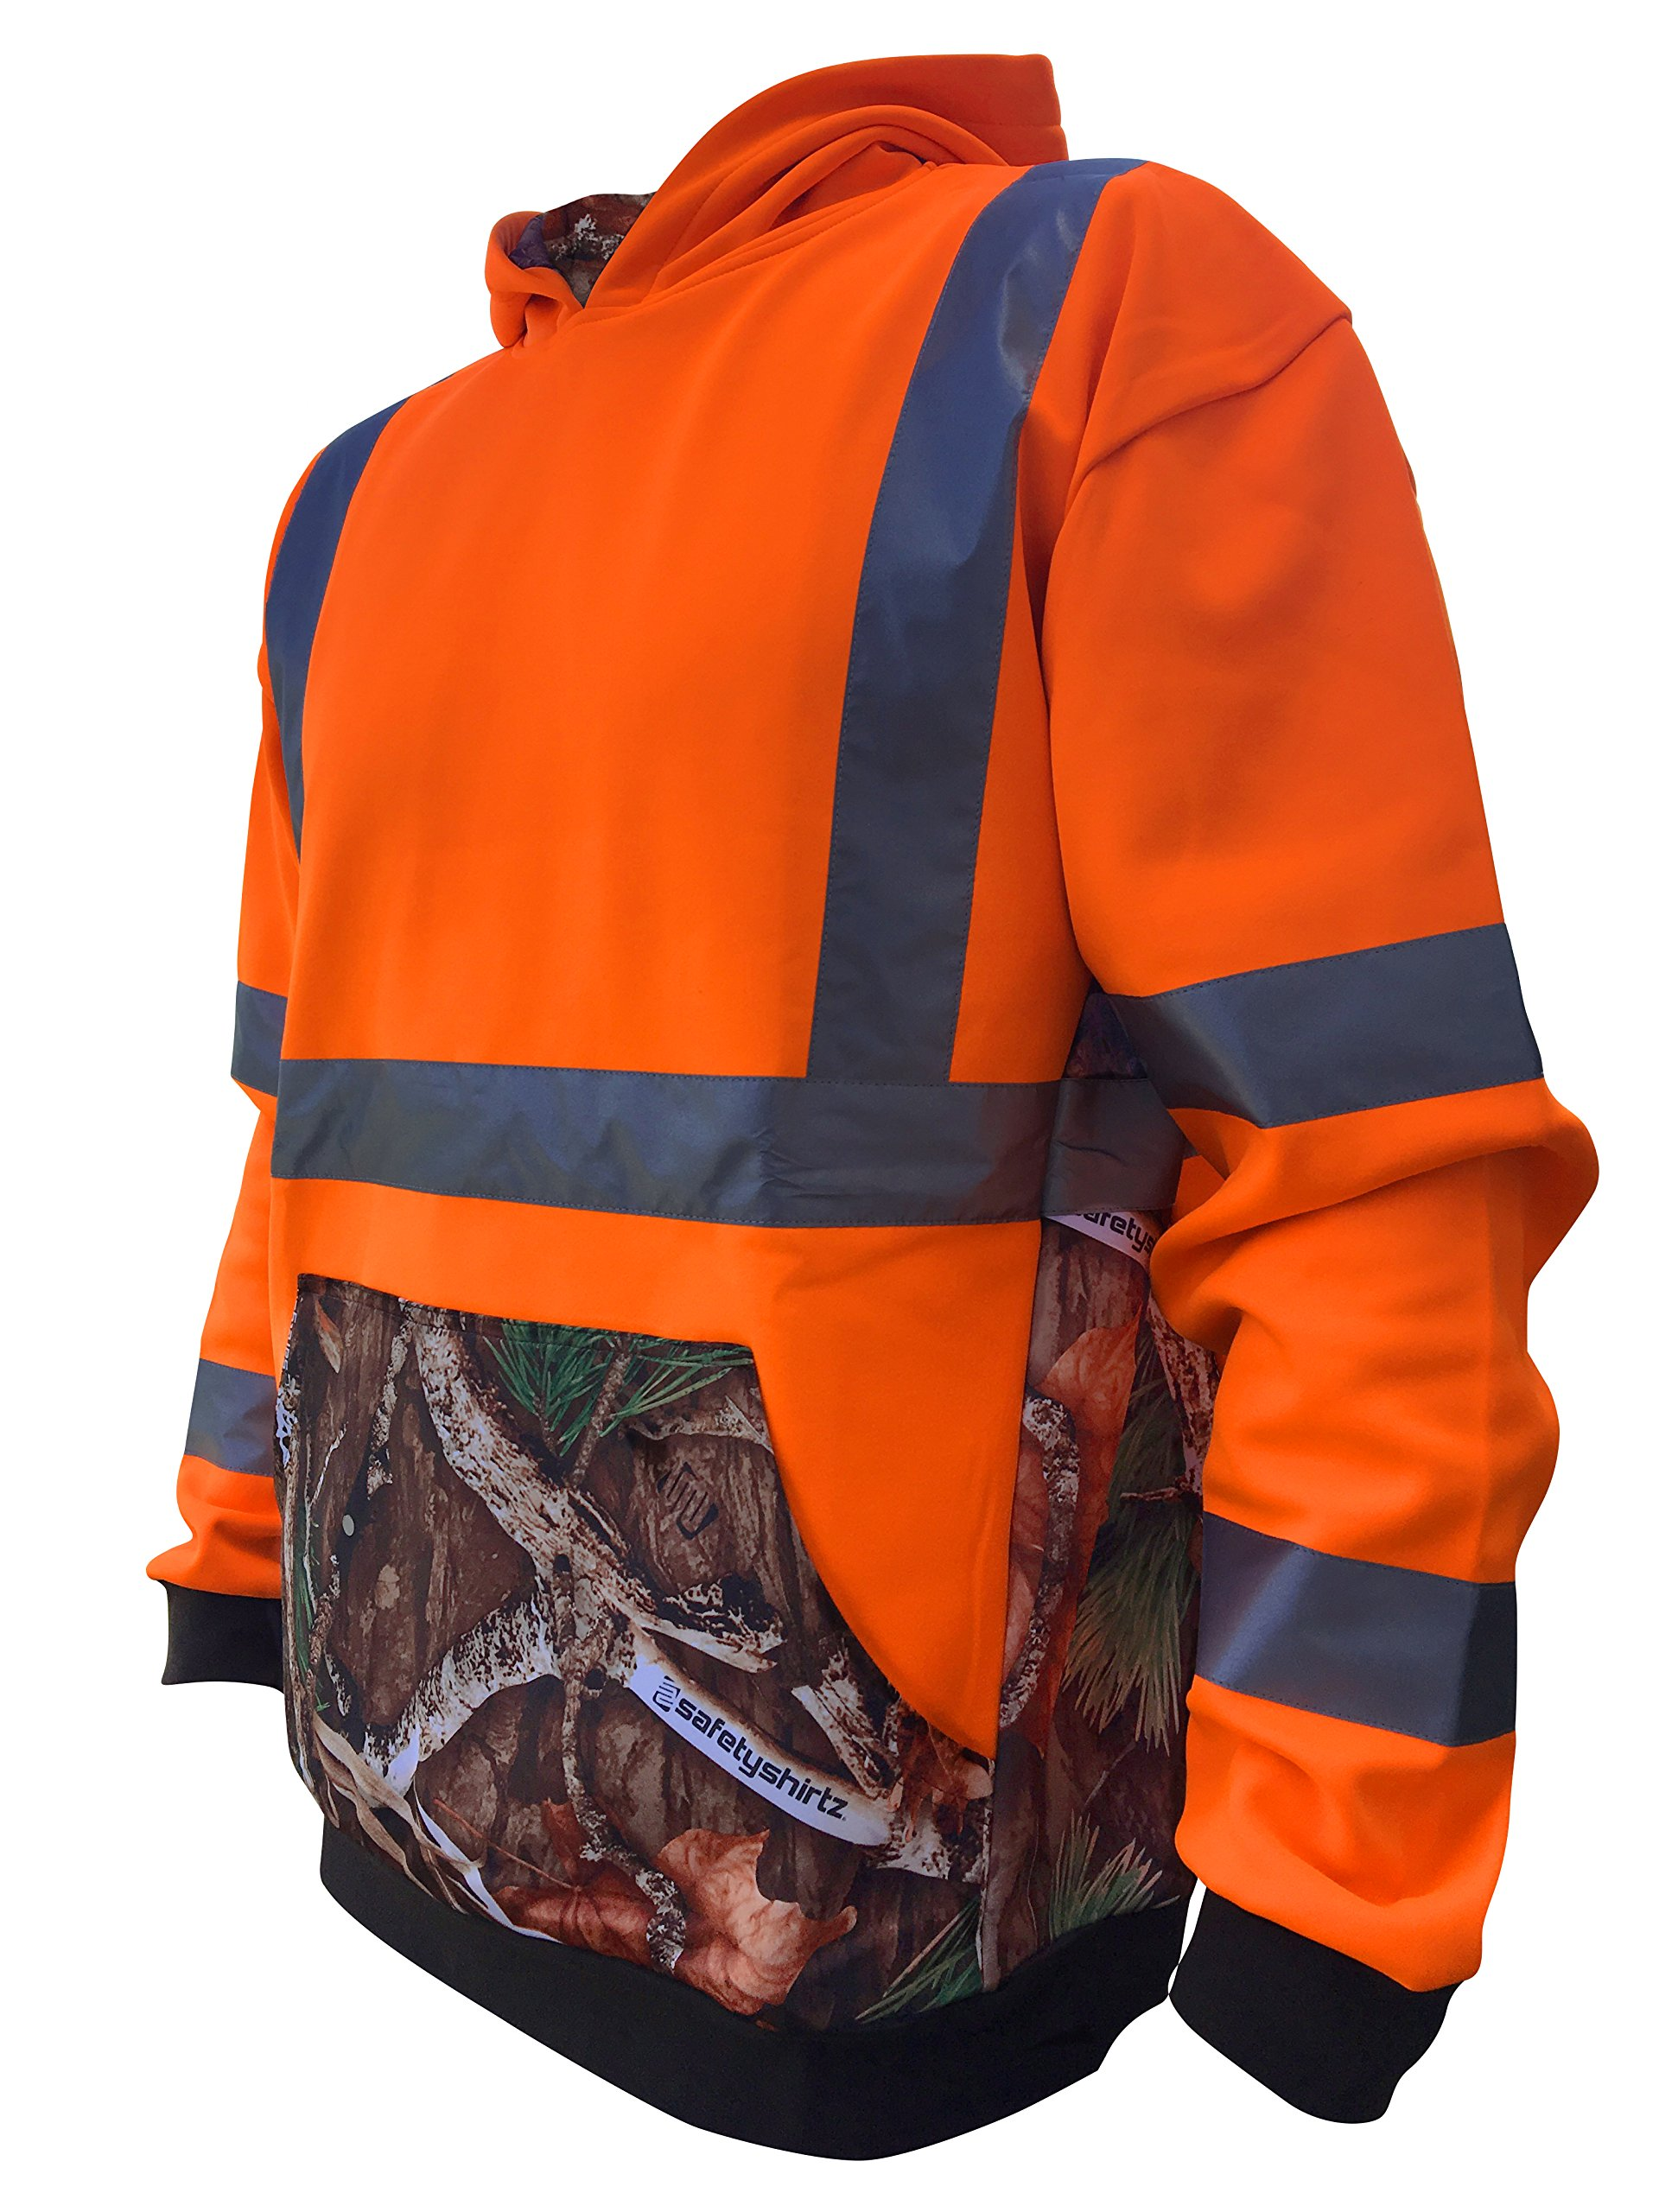 SafetyShirtz SS360 Deepwoods Camo Safety Hoody ANSI Class 3 S by SafetyShirtz